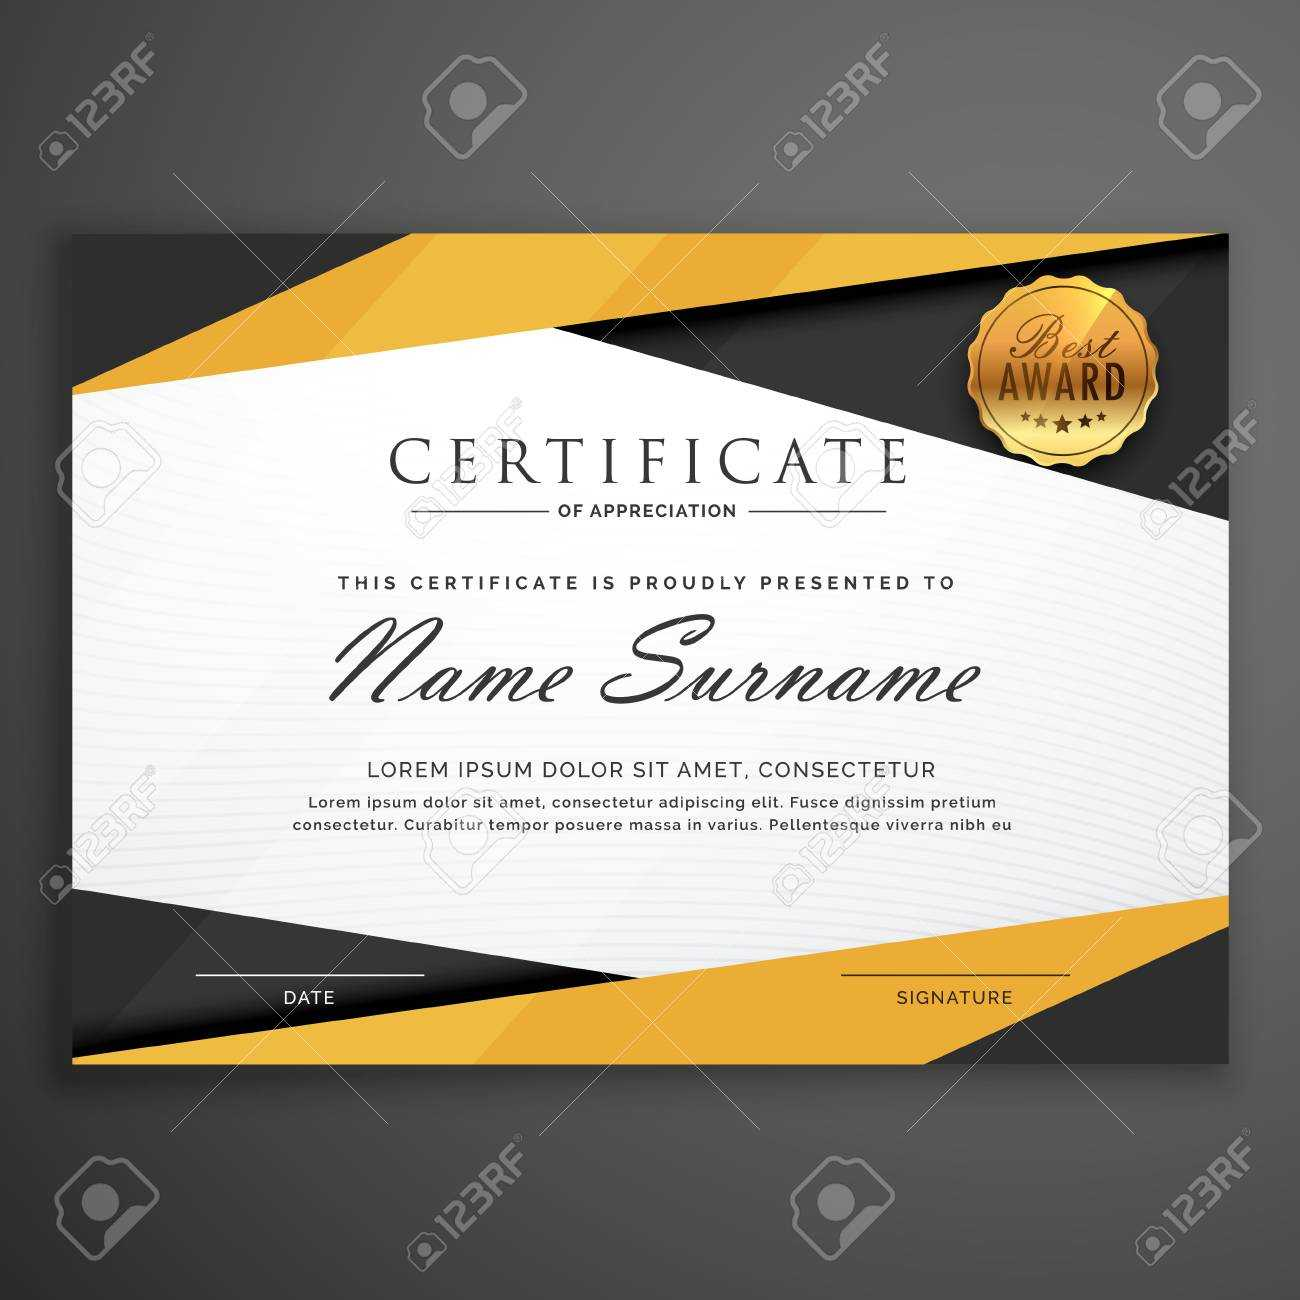 Yellow And Black Geometric Certificate Award Design Template Intended For Award Certificate Design Template